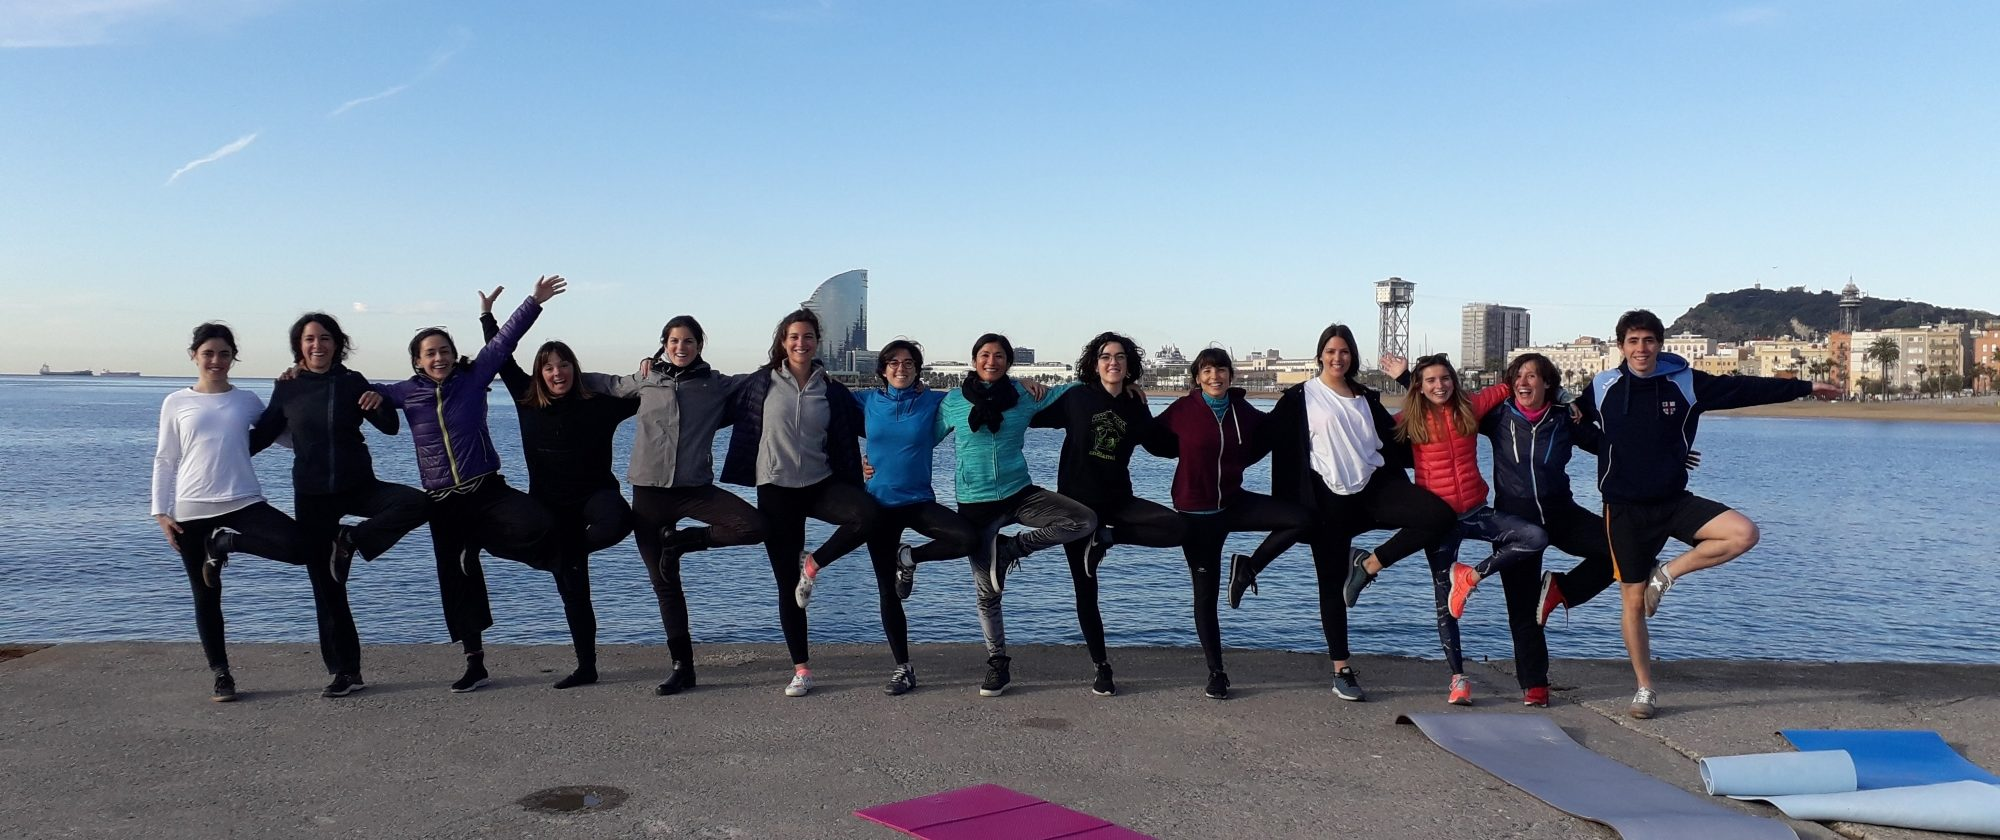 Picture of one of the Yoga sessions at the beach, organized within the PRBB Healthy Week framework.